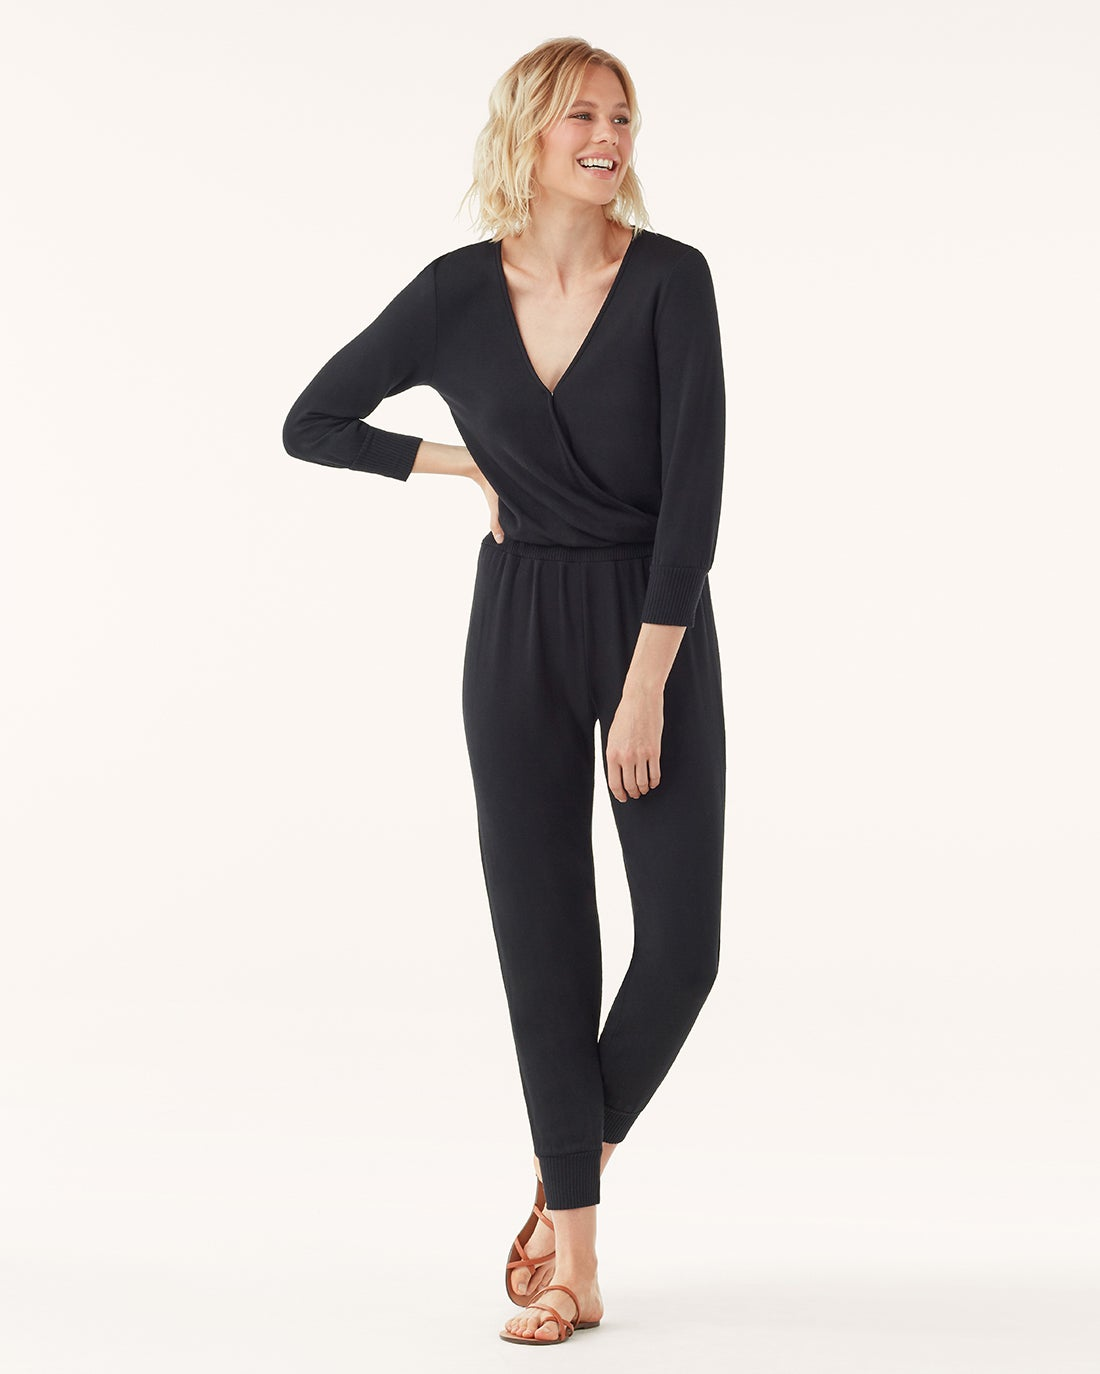 Splendid Super Soft with Rib Surplice Romper RF9R150